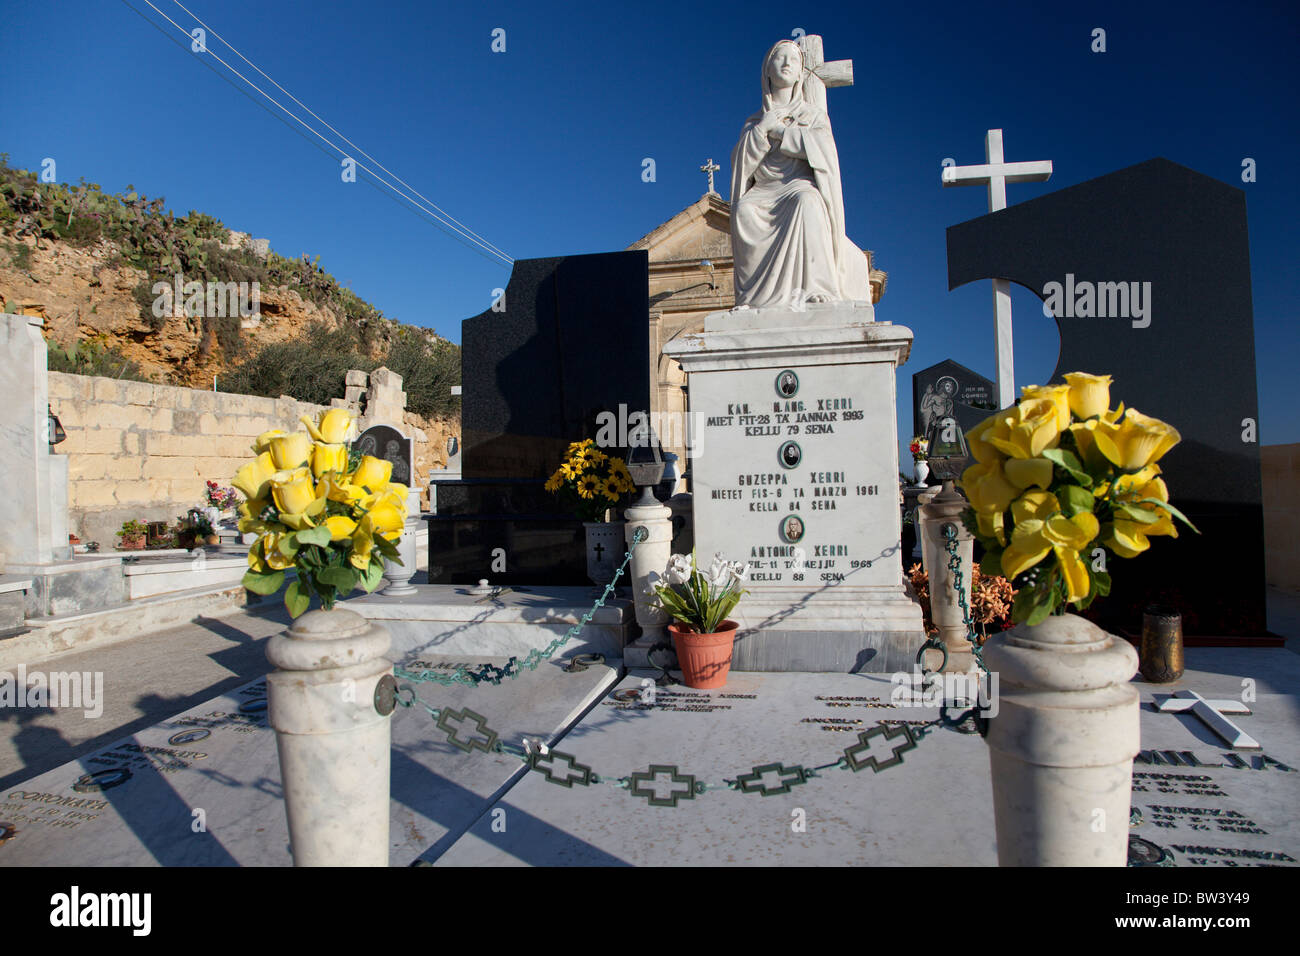 Ornate baroque tombstones adorn graves in cemeteries in the Maltese Islands. - Stock Image